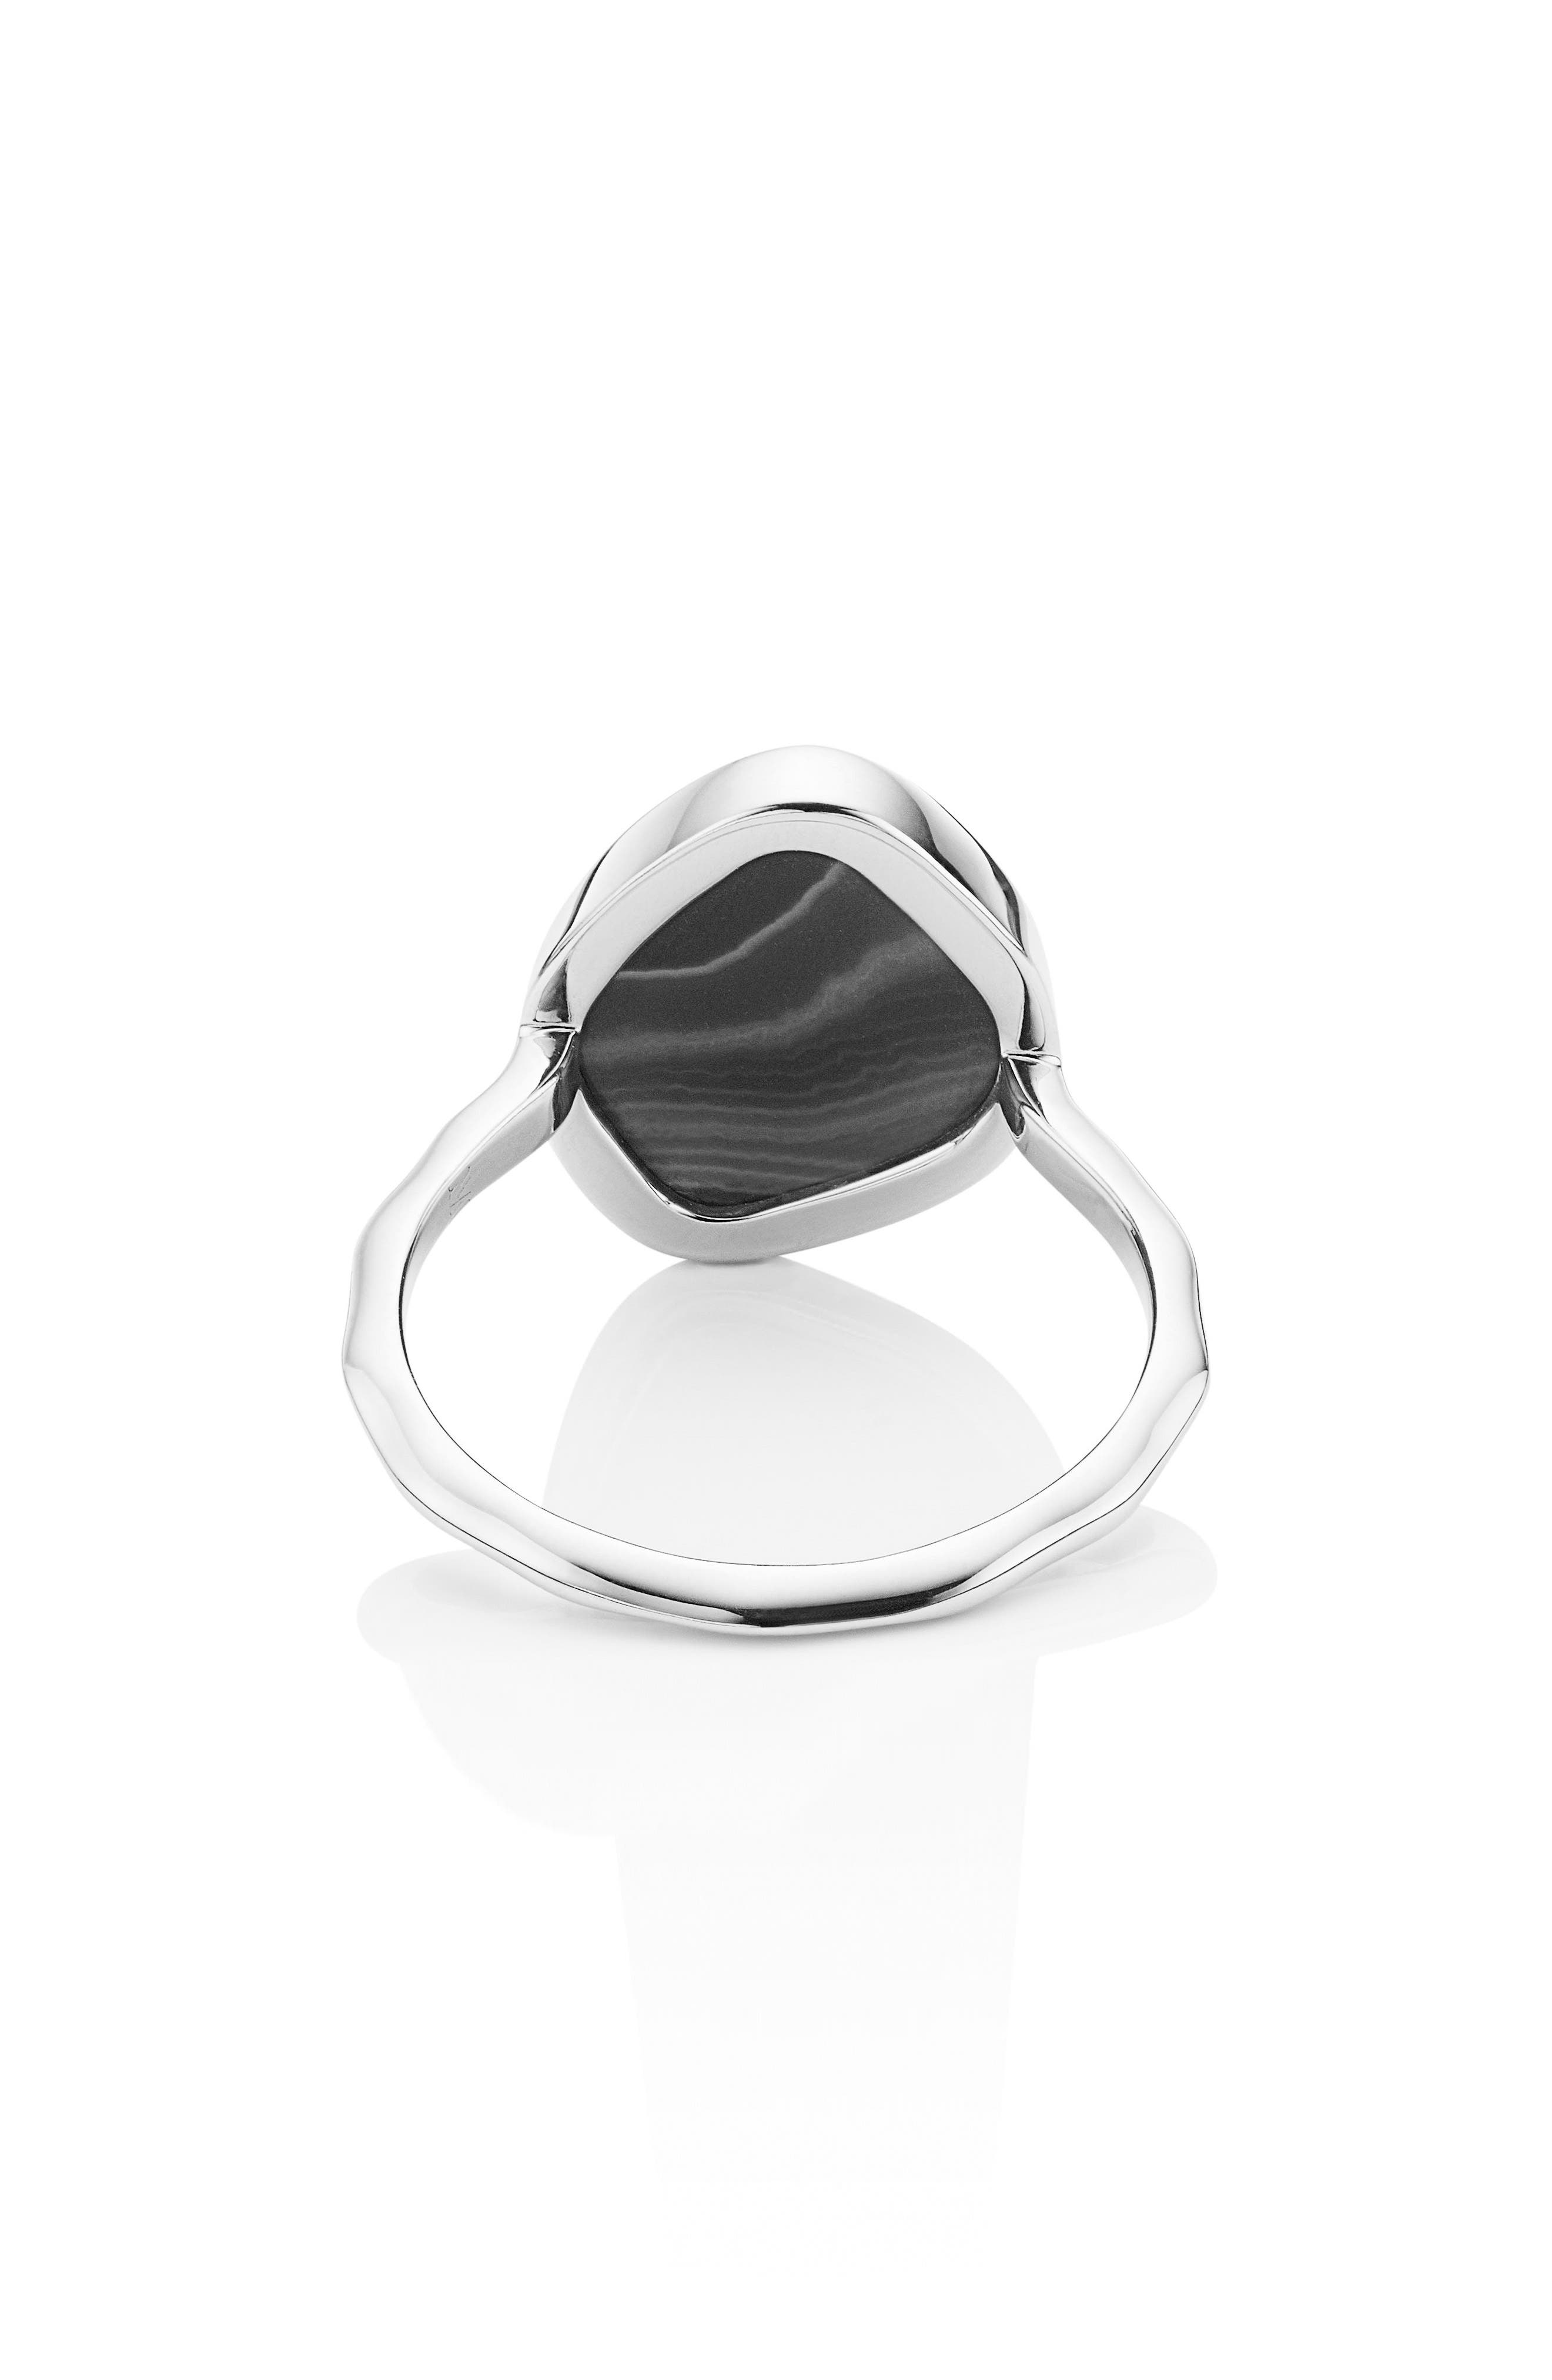 Siren Nugget Semiprecious Stacking Ring,                             Alternate thumbnail 4, color,                             Silver/ Black Line Onyx